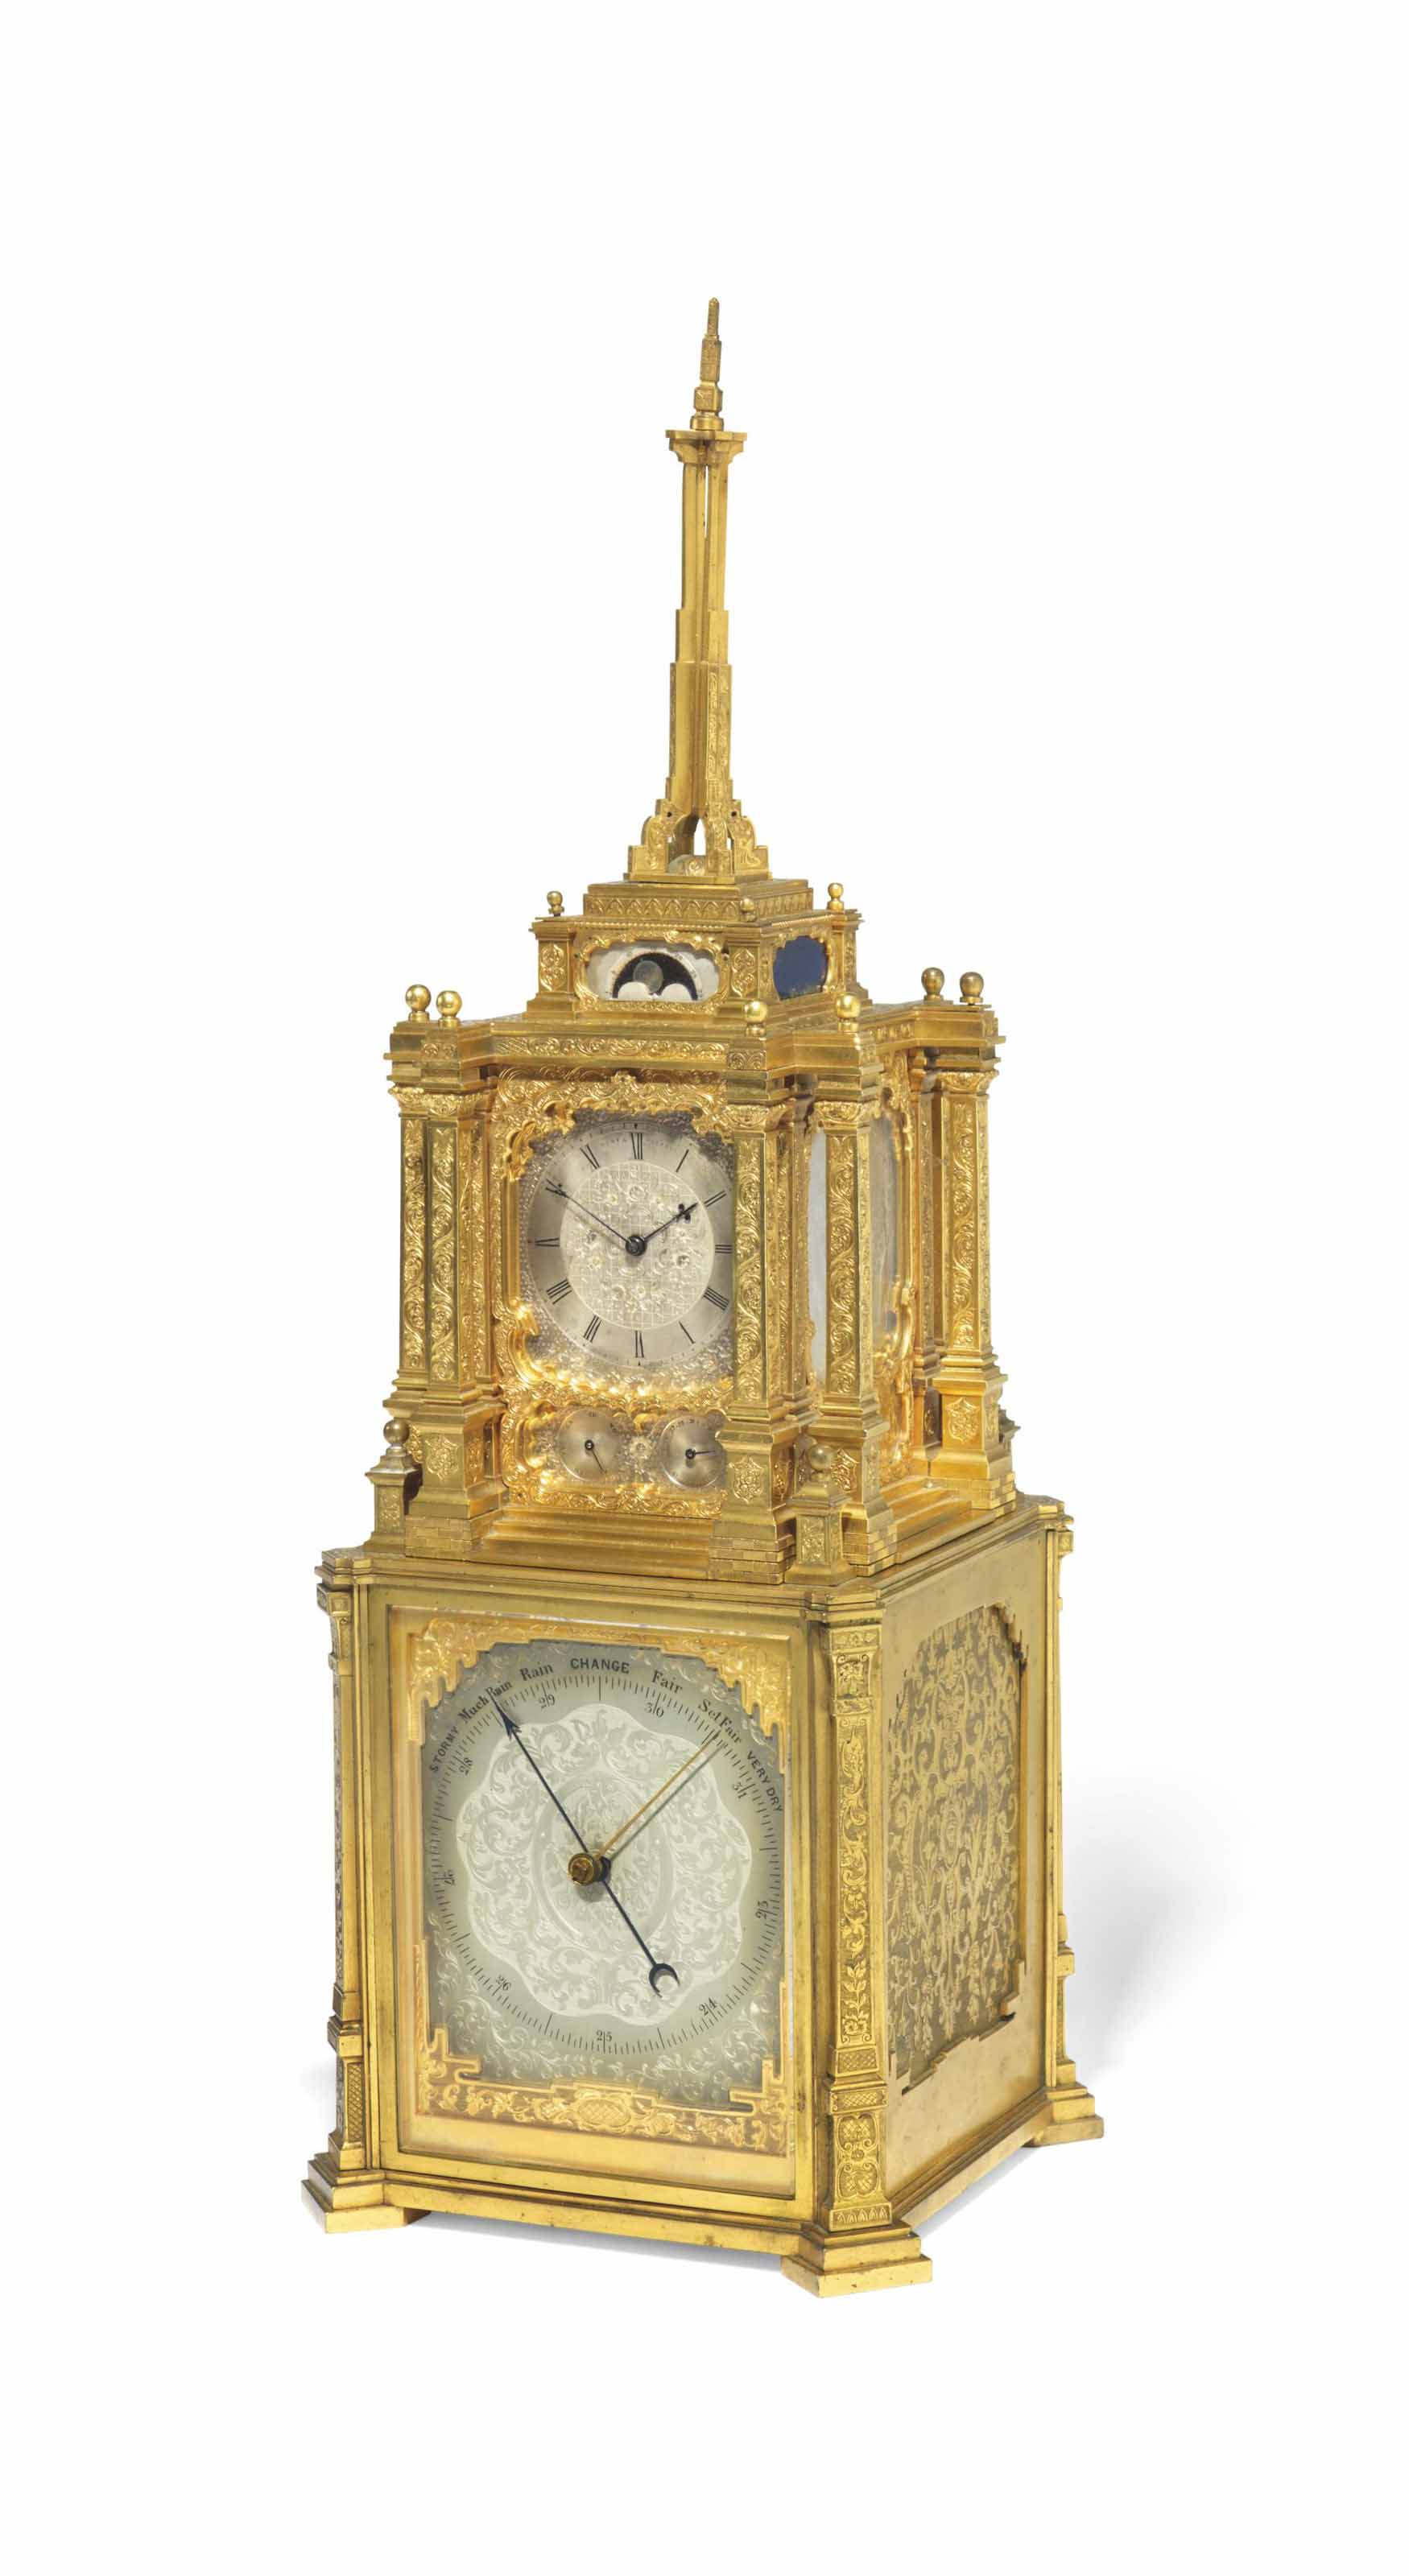 A VICTORIAN GILT-BRASS STRIKING TABLE CLOCK WITH MOONPHASE, CALENDAR AND BAROMETER